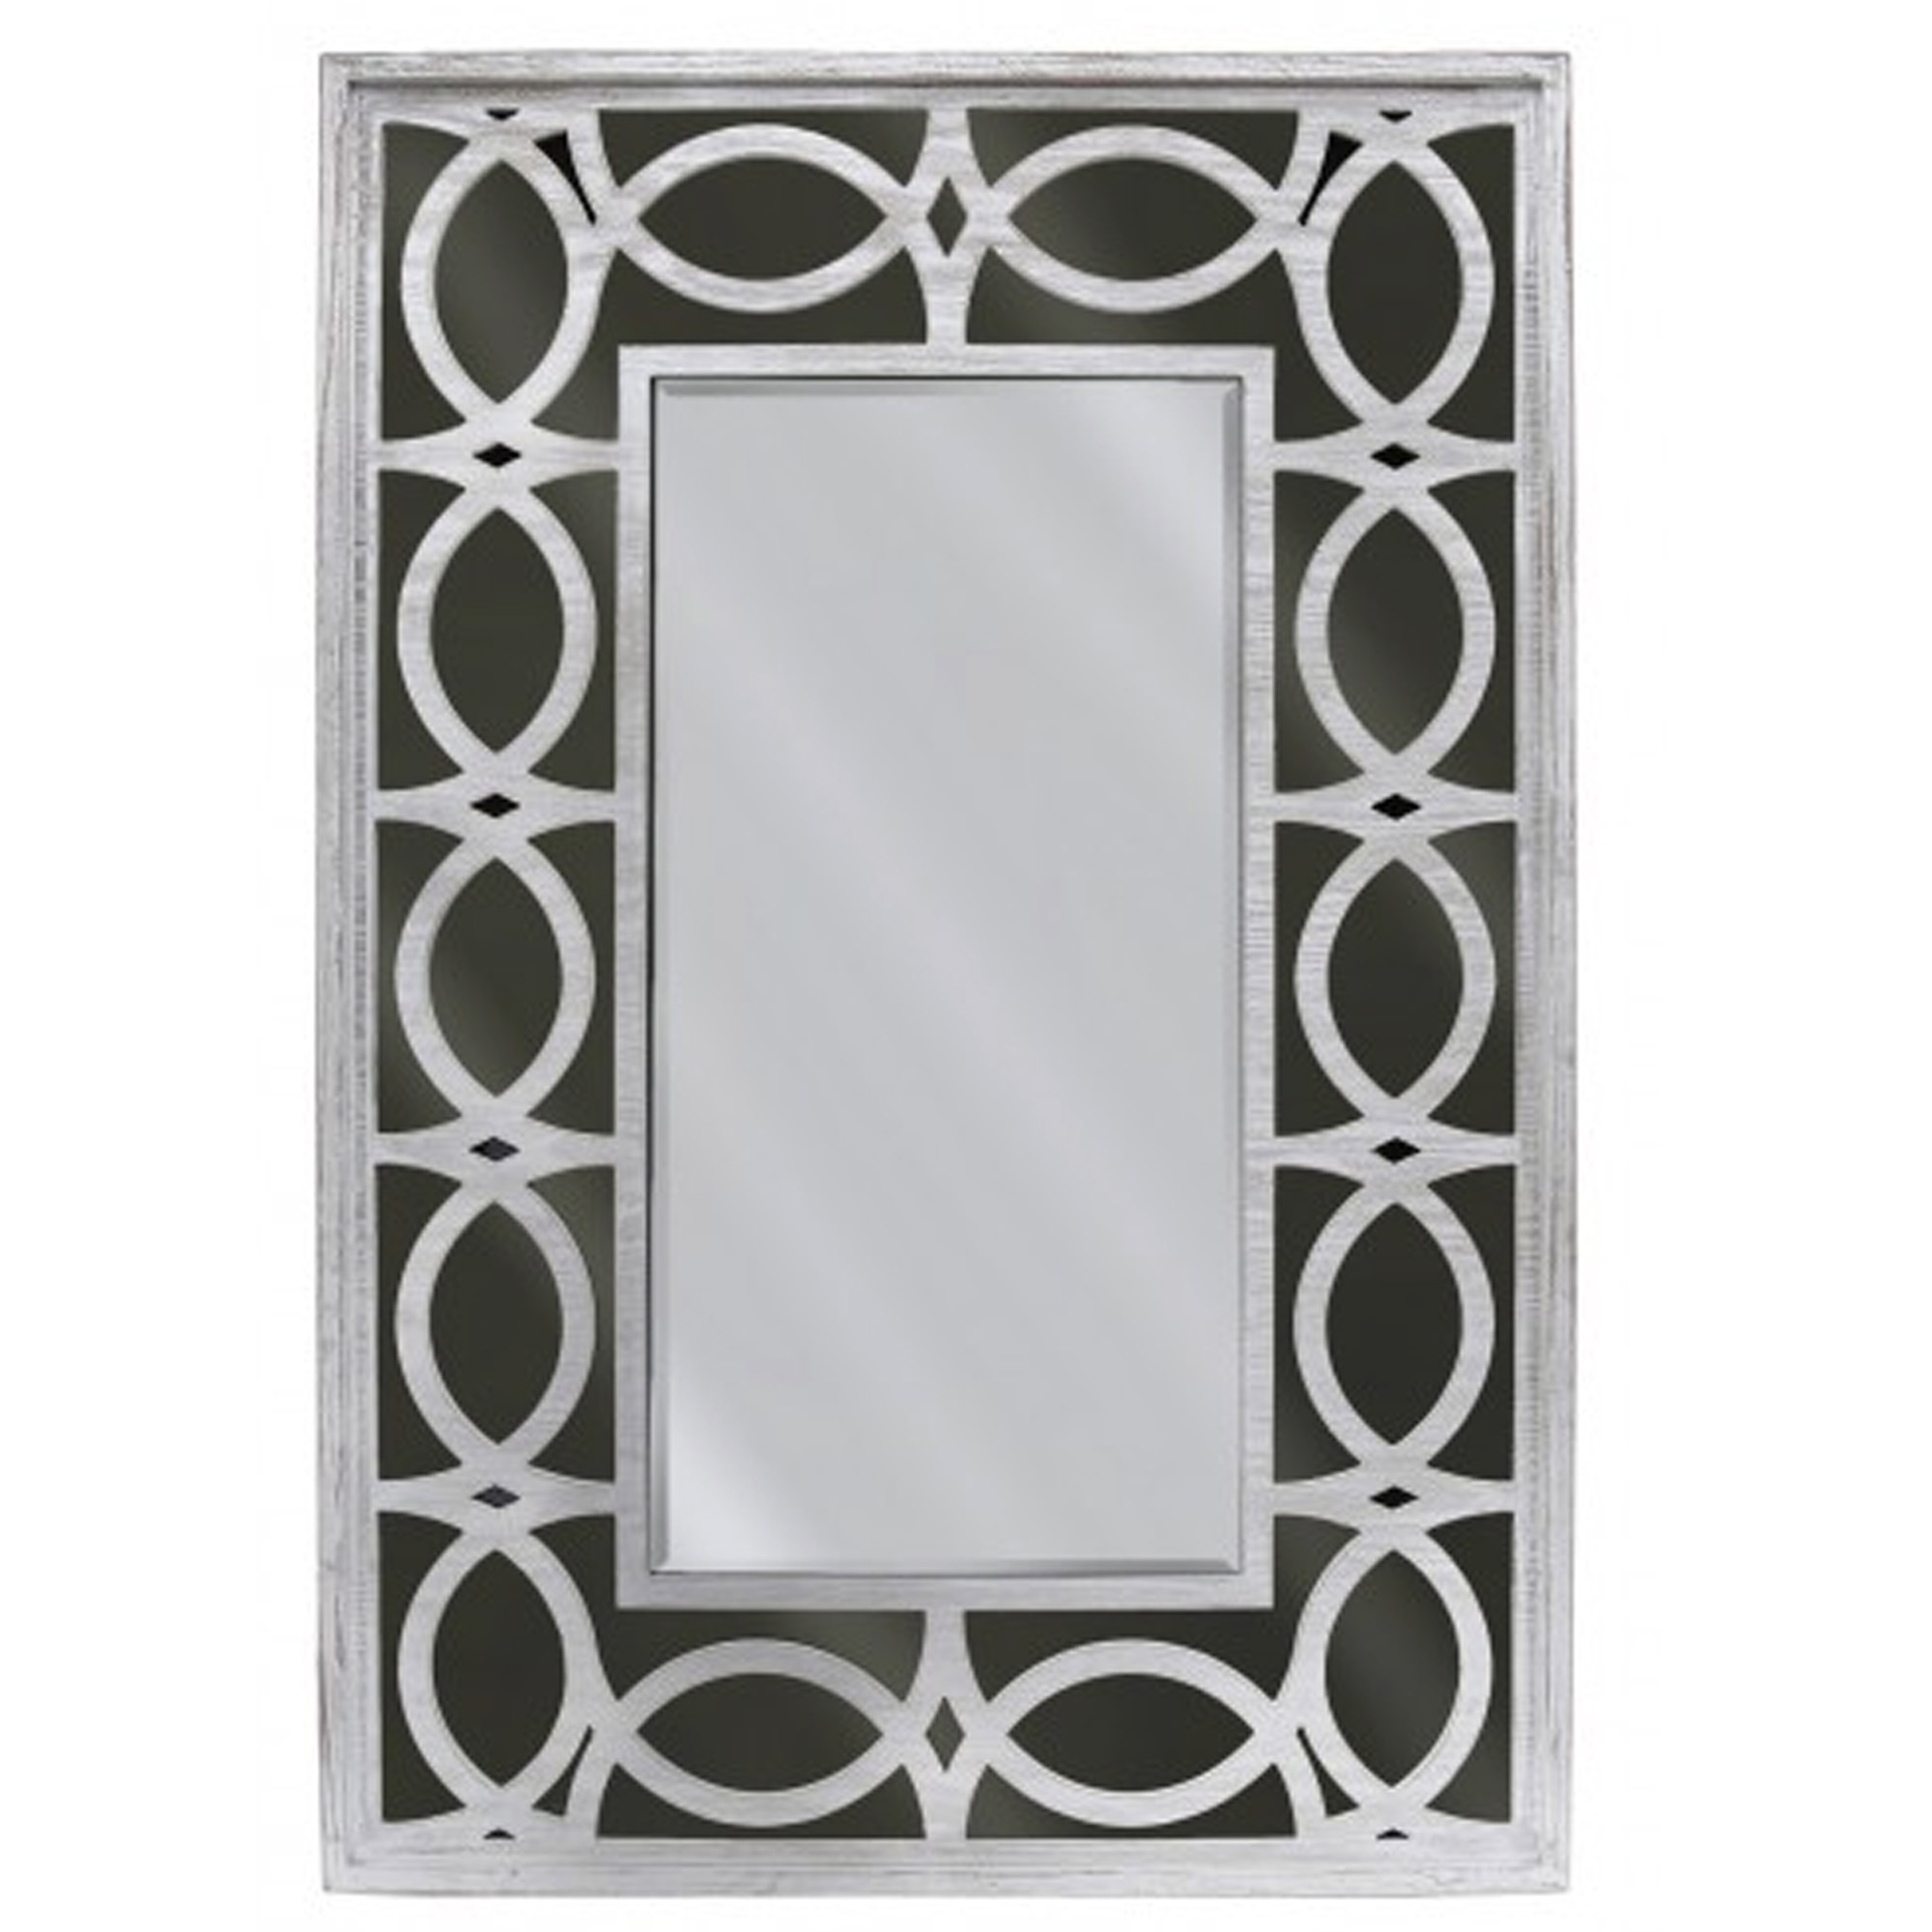 Black Wall Mirrors Throughout Well Liked Black & Silver Decorative Wall Mirror (View 5 of 20)